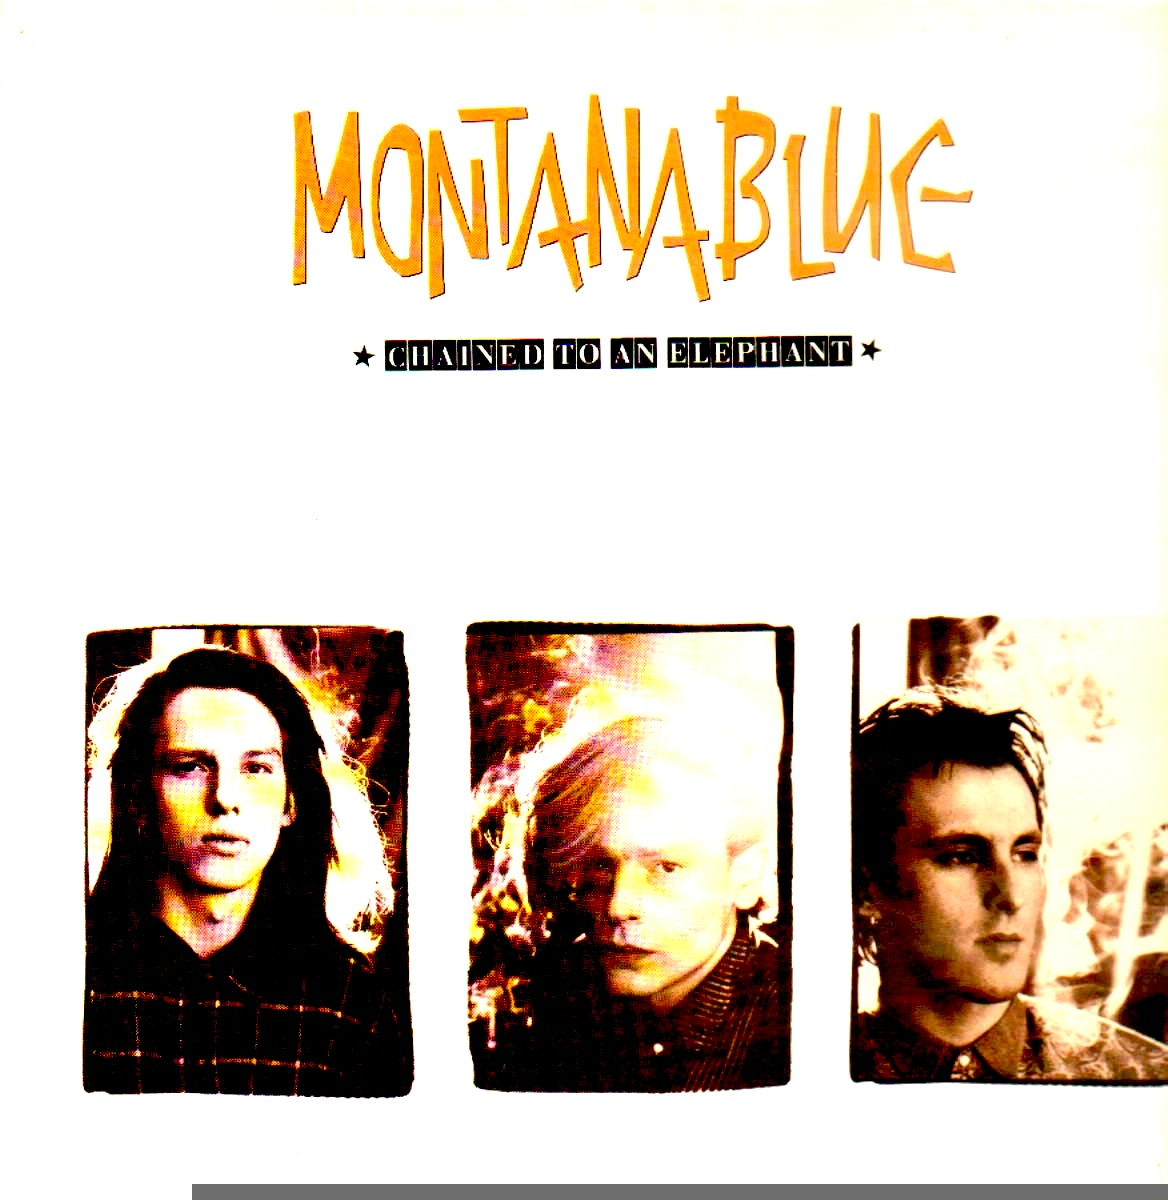 1988-montanablue-chained_to_an_elephant